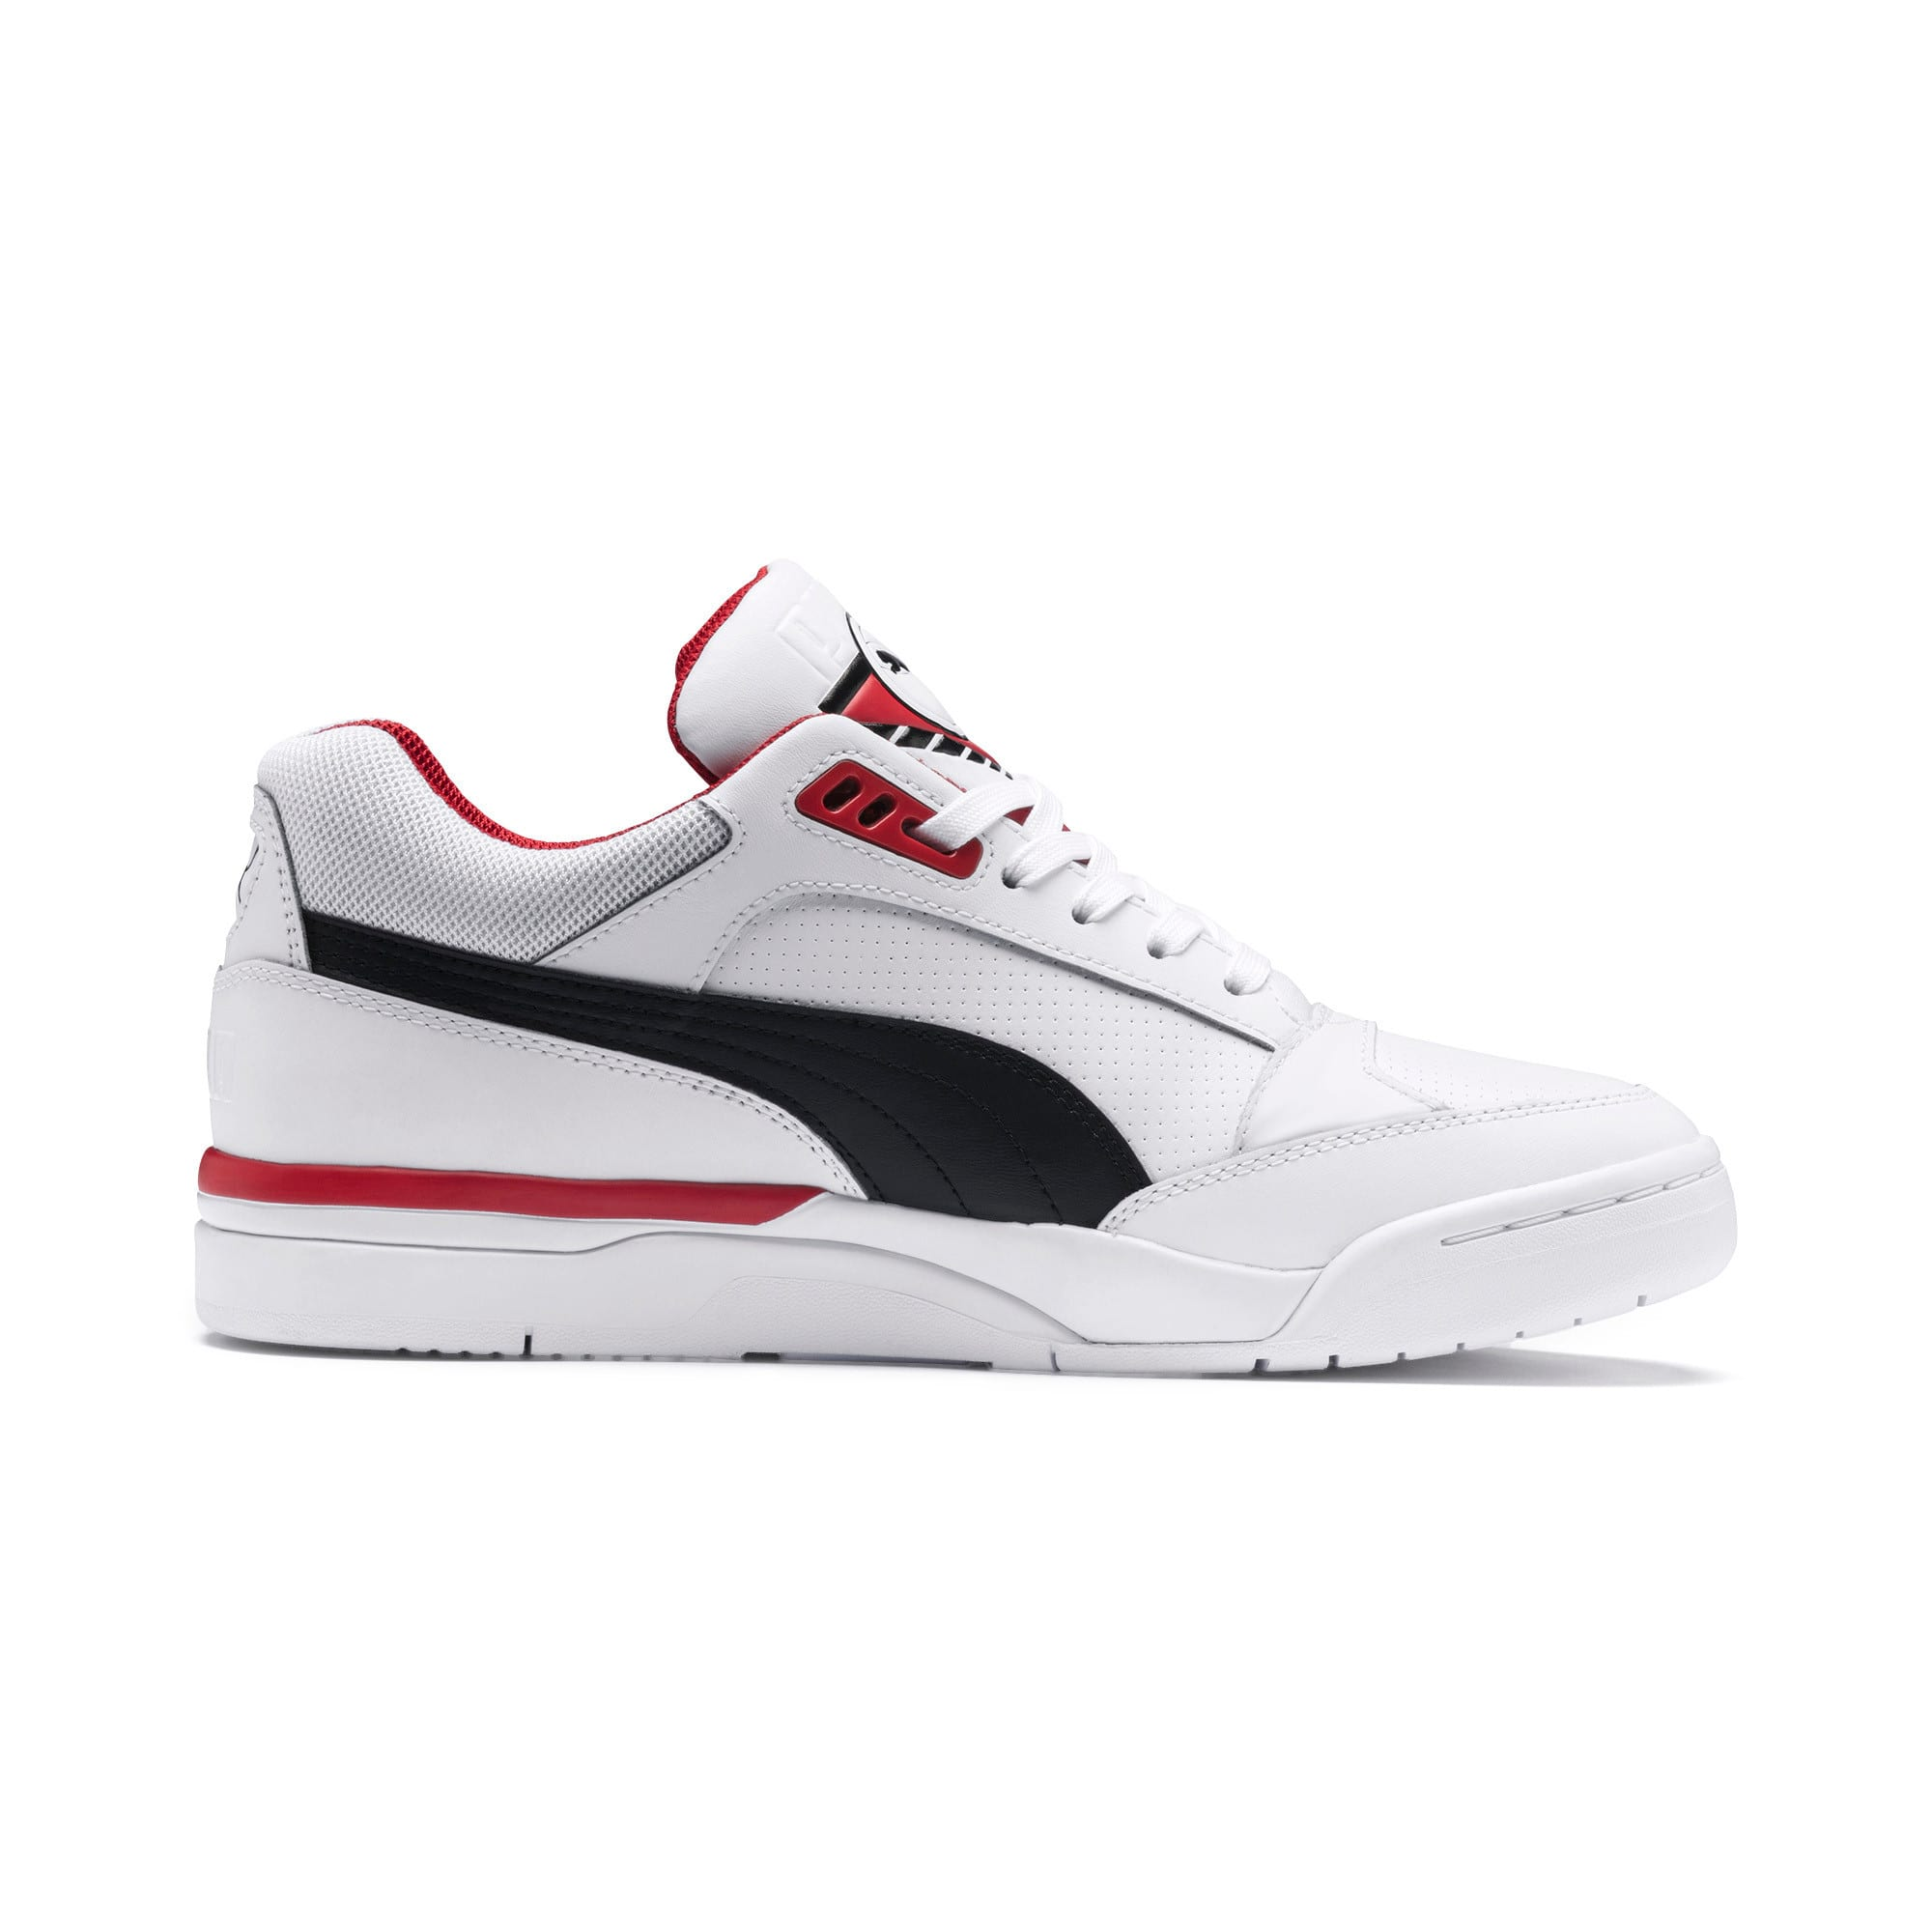 Anteprima 5 di Palace Guard Men's Basketball Trainers, Puma White-Puma Black-red, medio